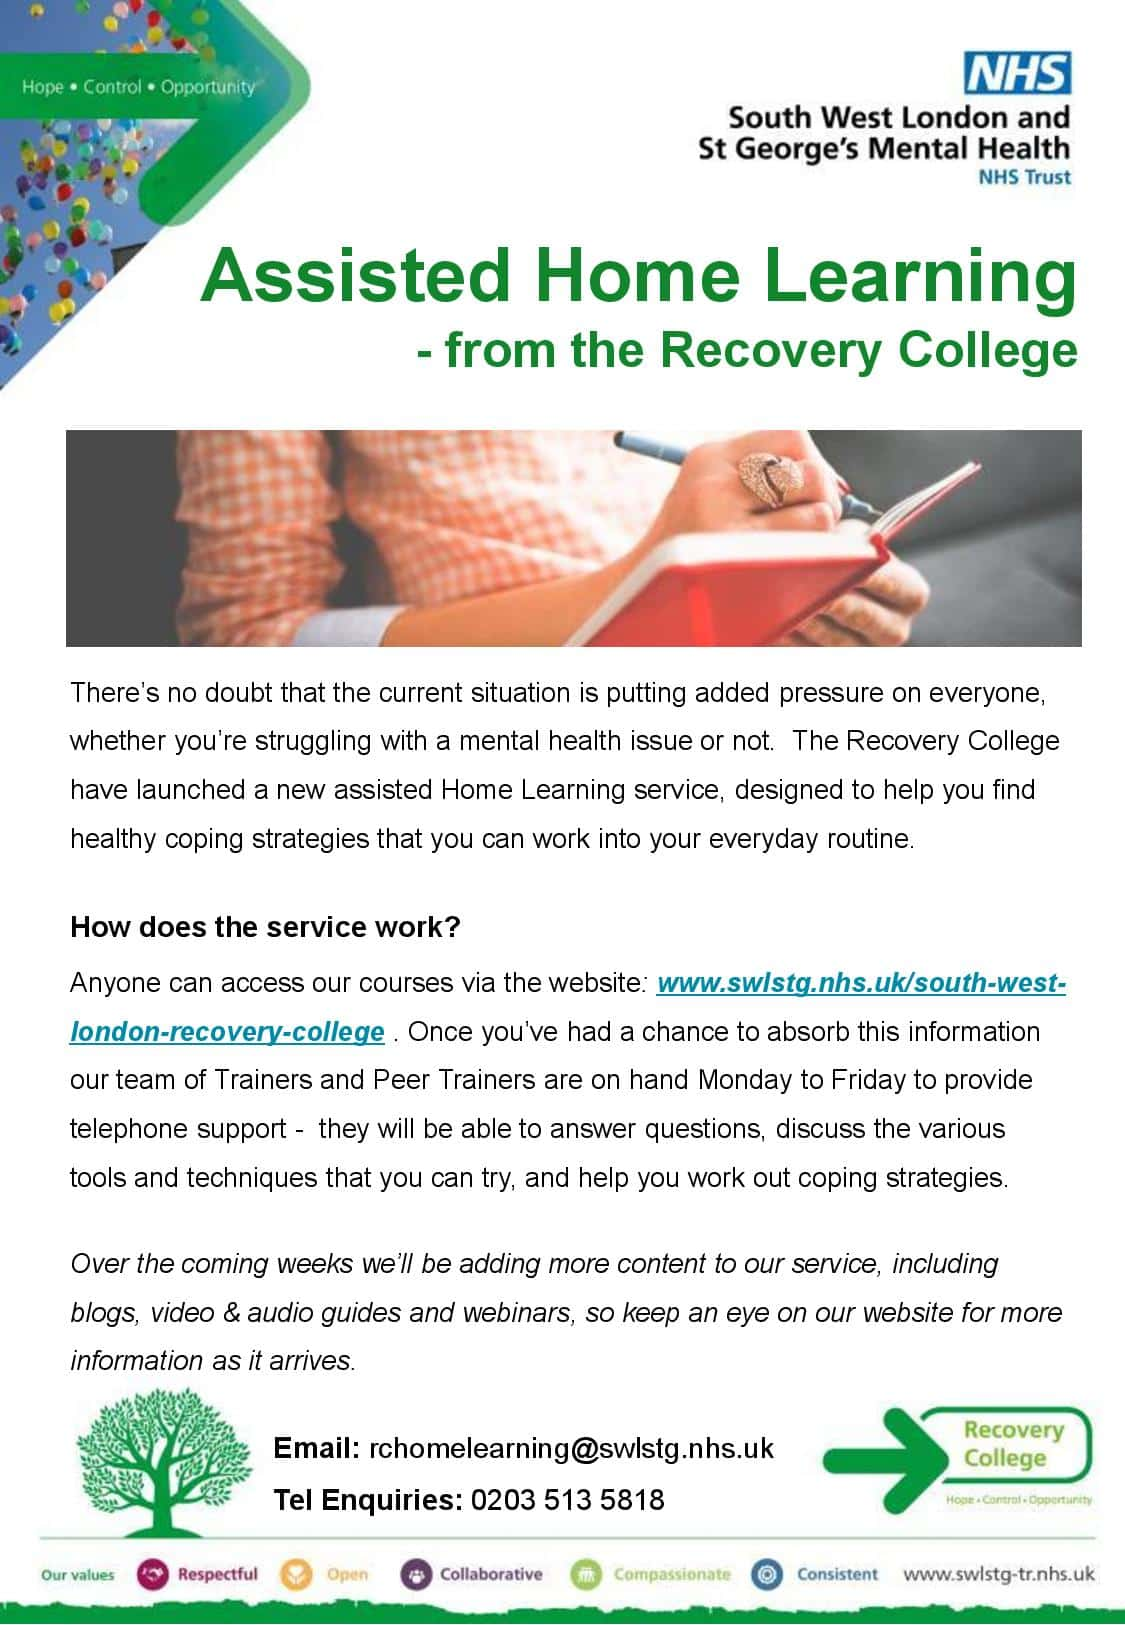 Recovery College establishes Home Learning service to help with coping strategies in this current situation